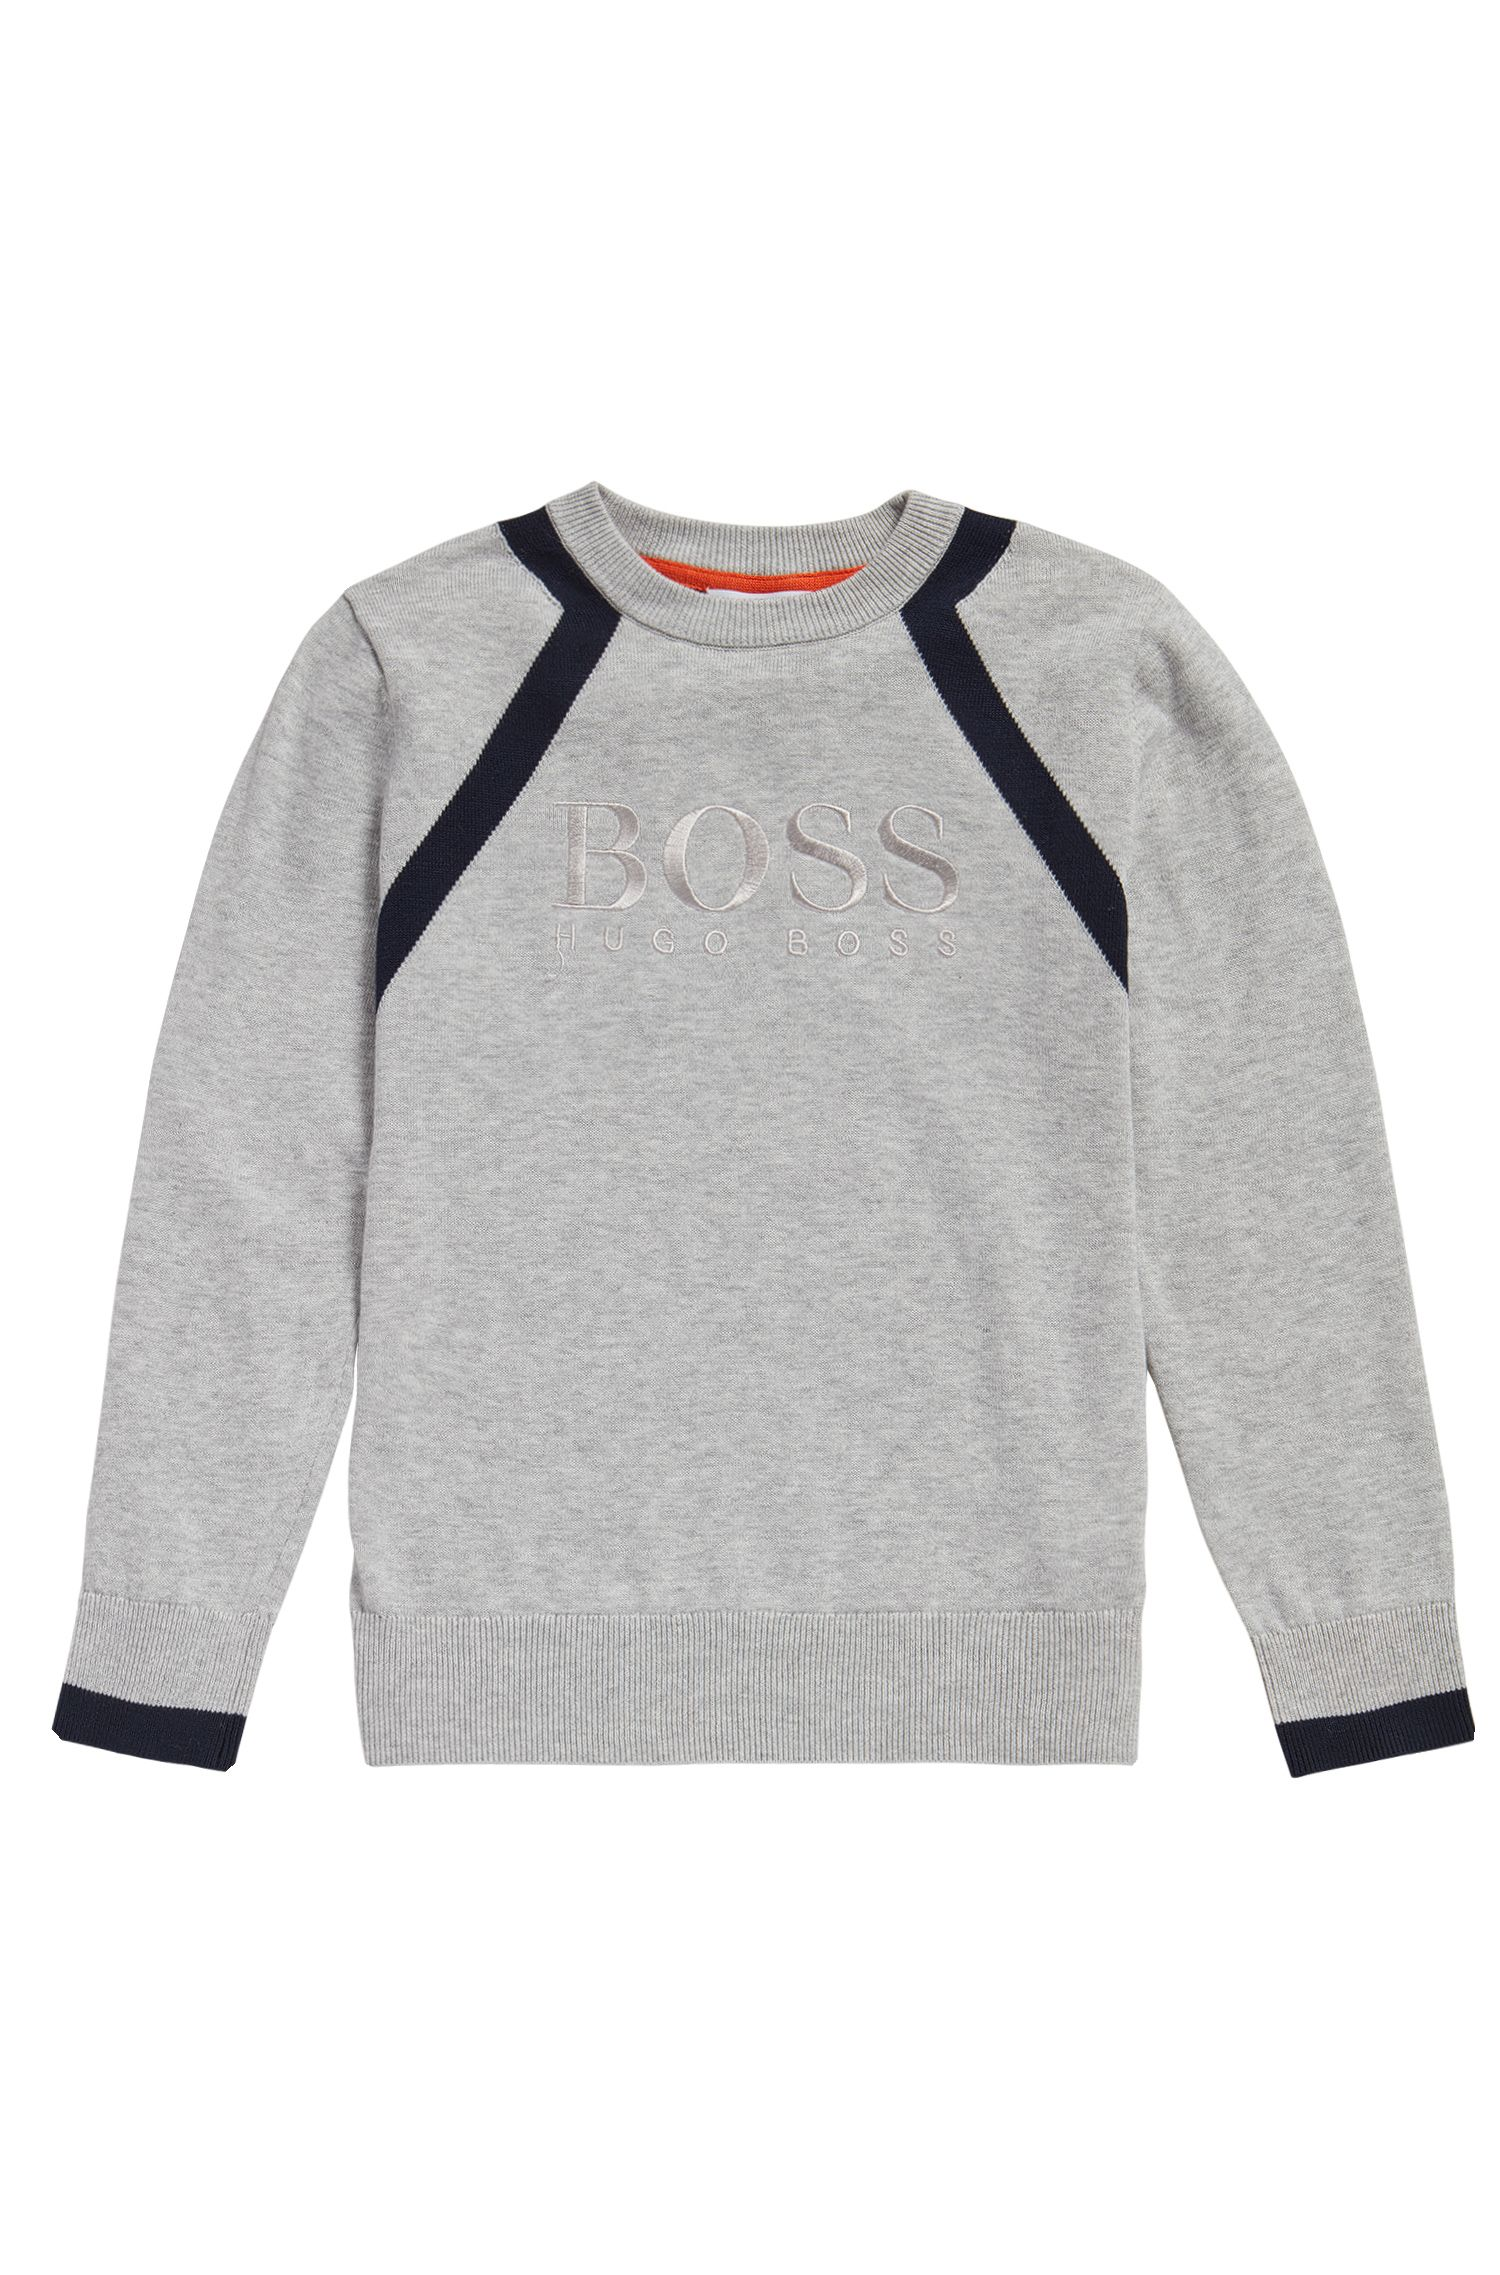 Kids' cotton sweater in melange look: 'J25982'